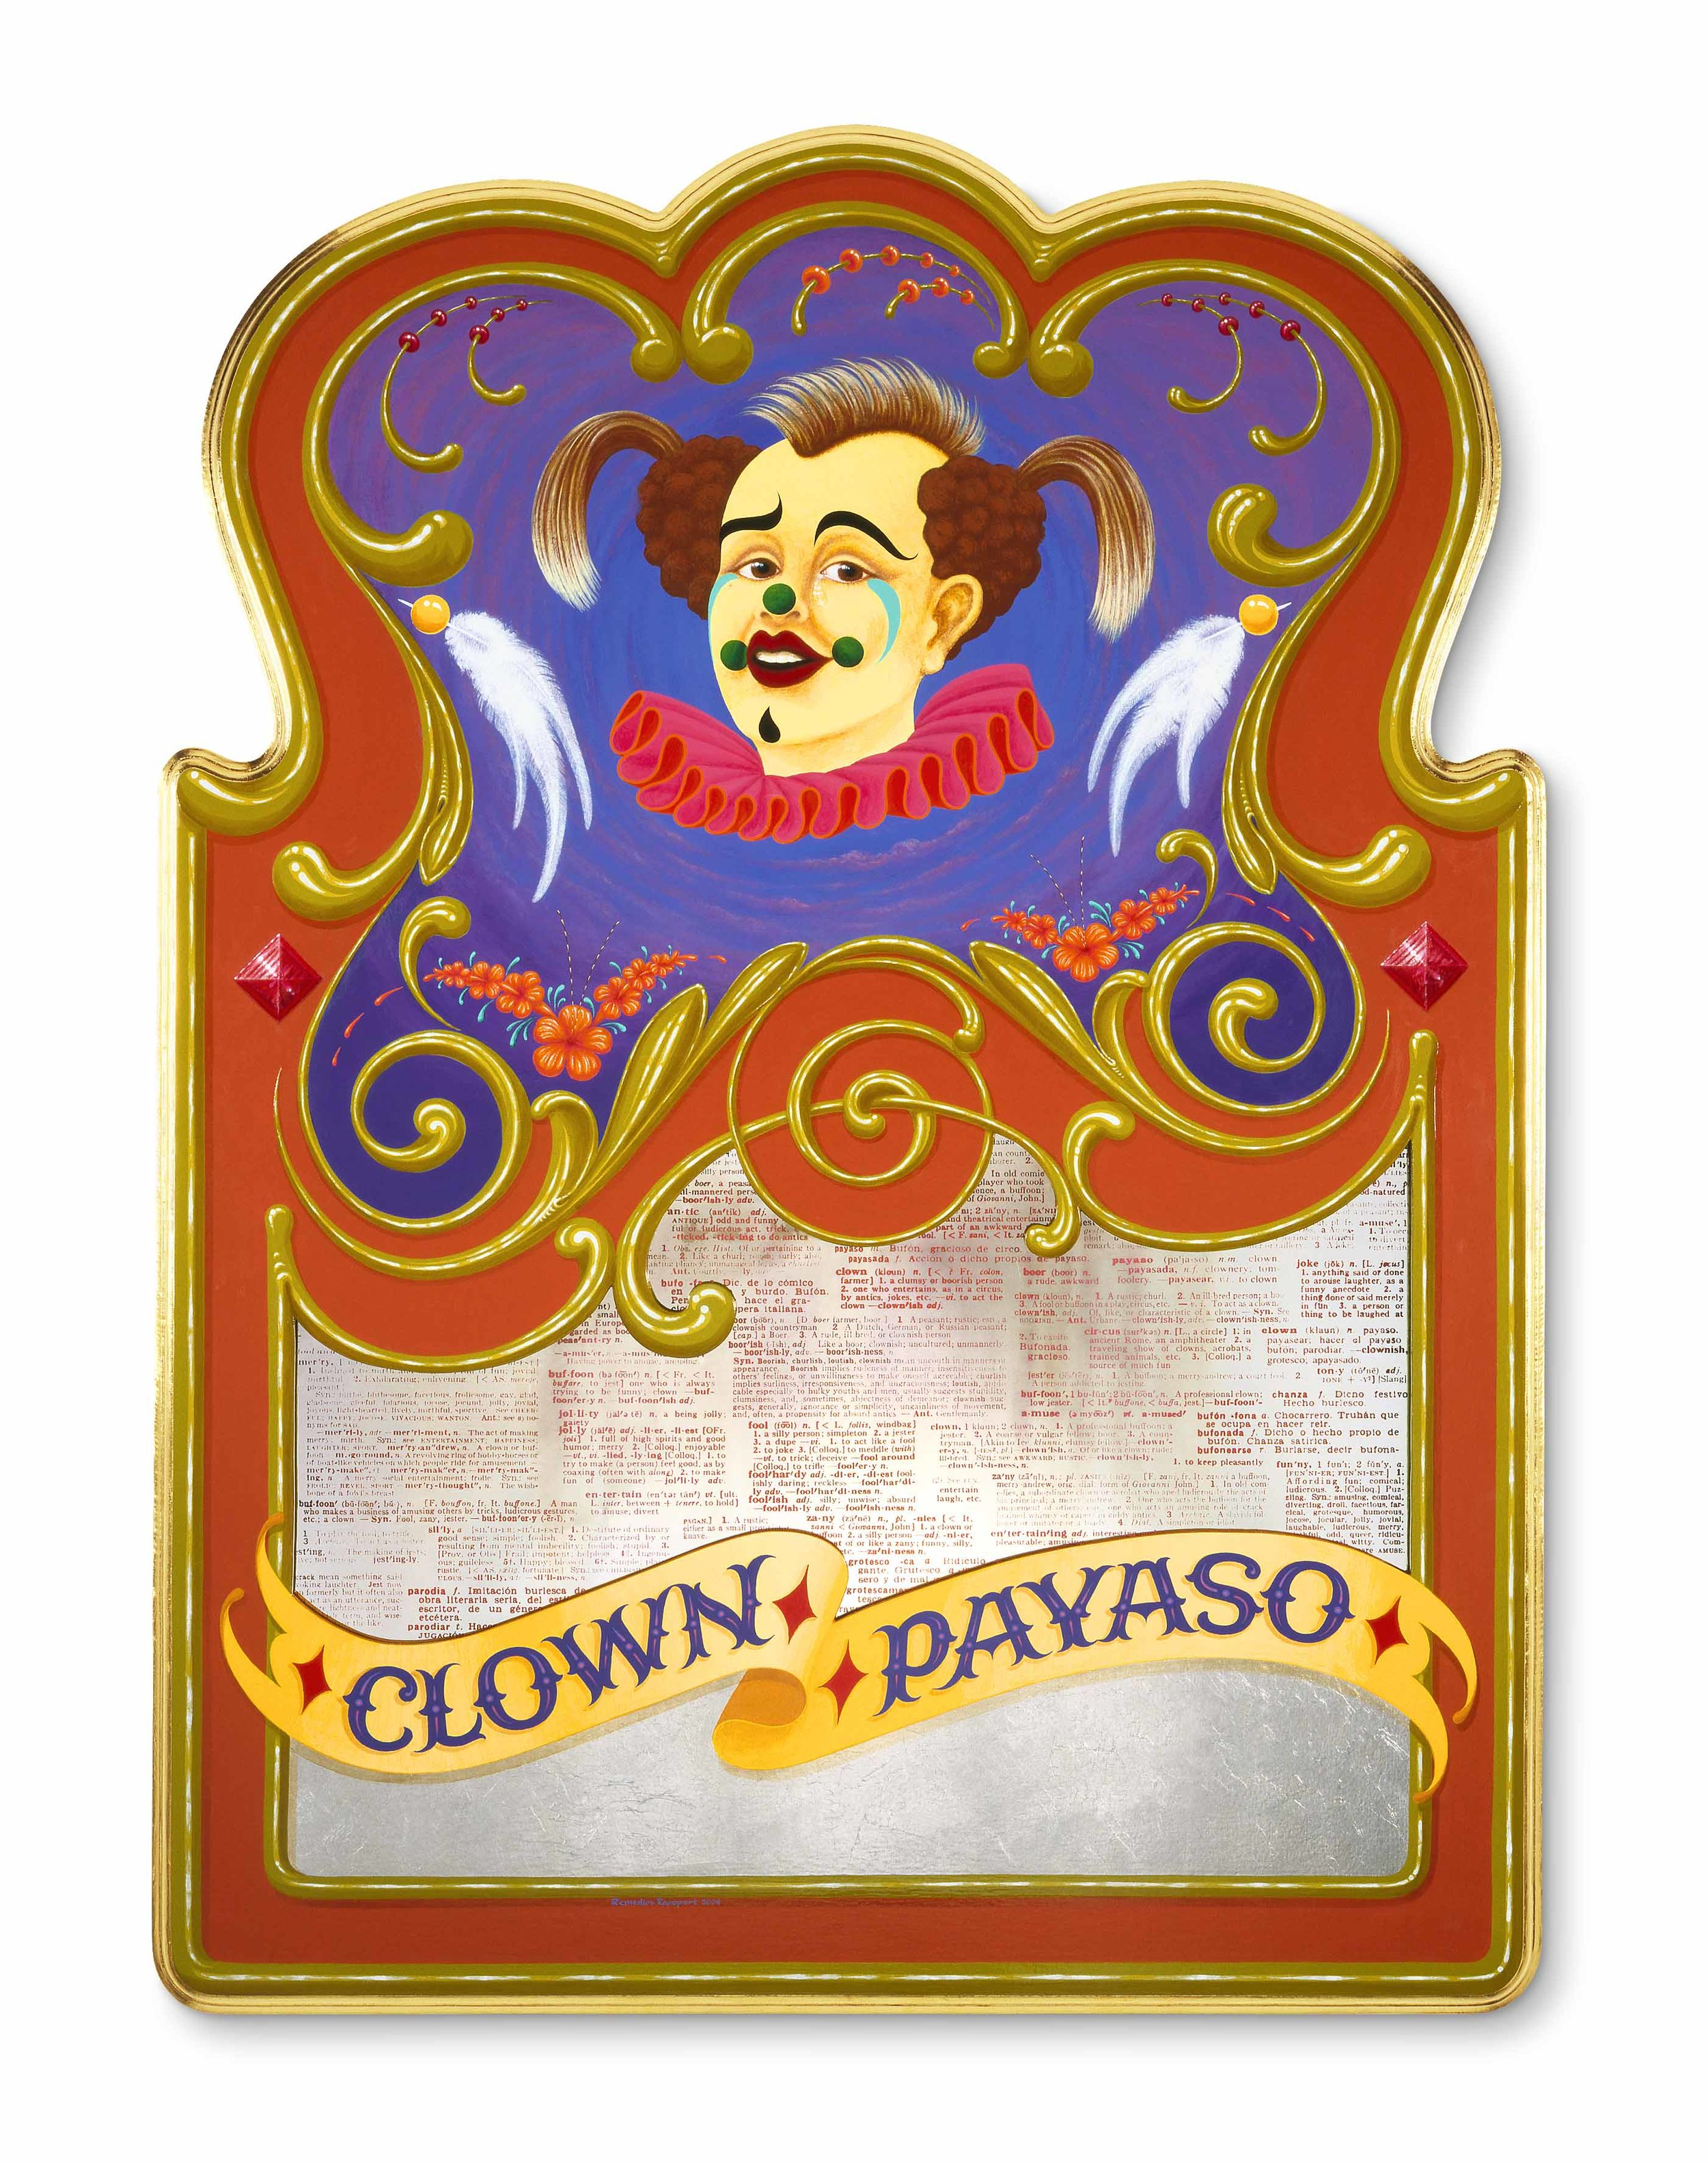 "Clown-Payaso   2004, Oil alkyd painting on wood panel with text embedded mirrored glass,  aluminum and 23k gilding  38"" x 28"" x 1.5"""